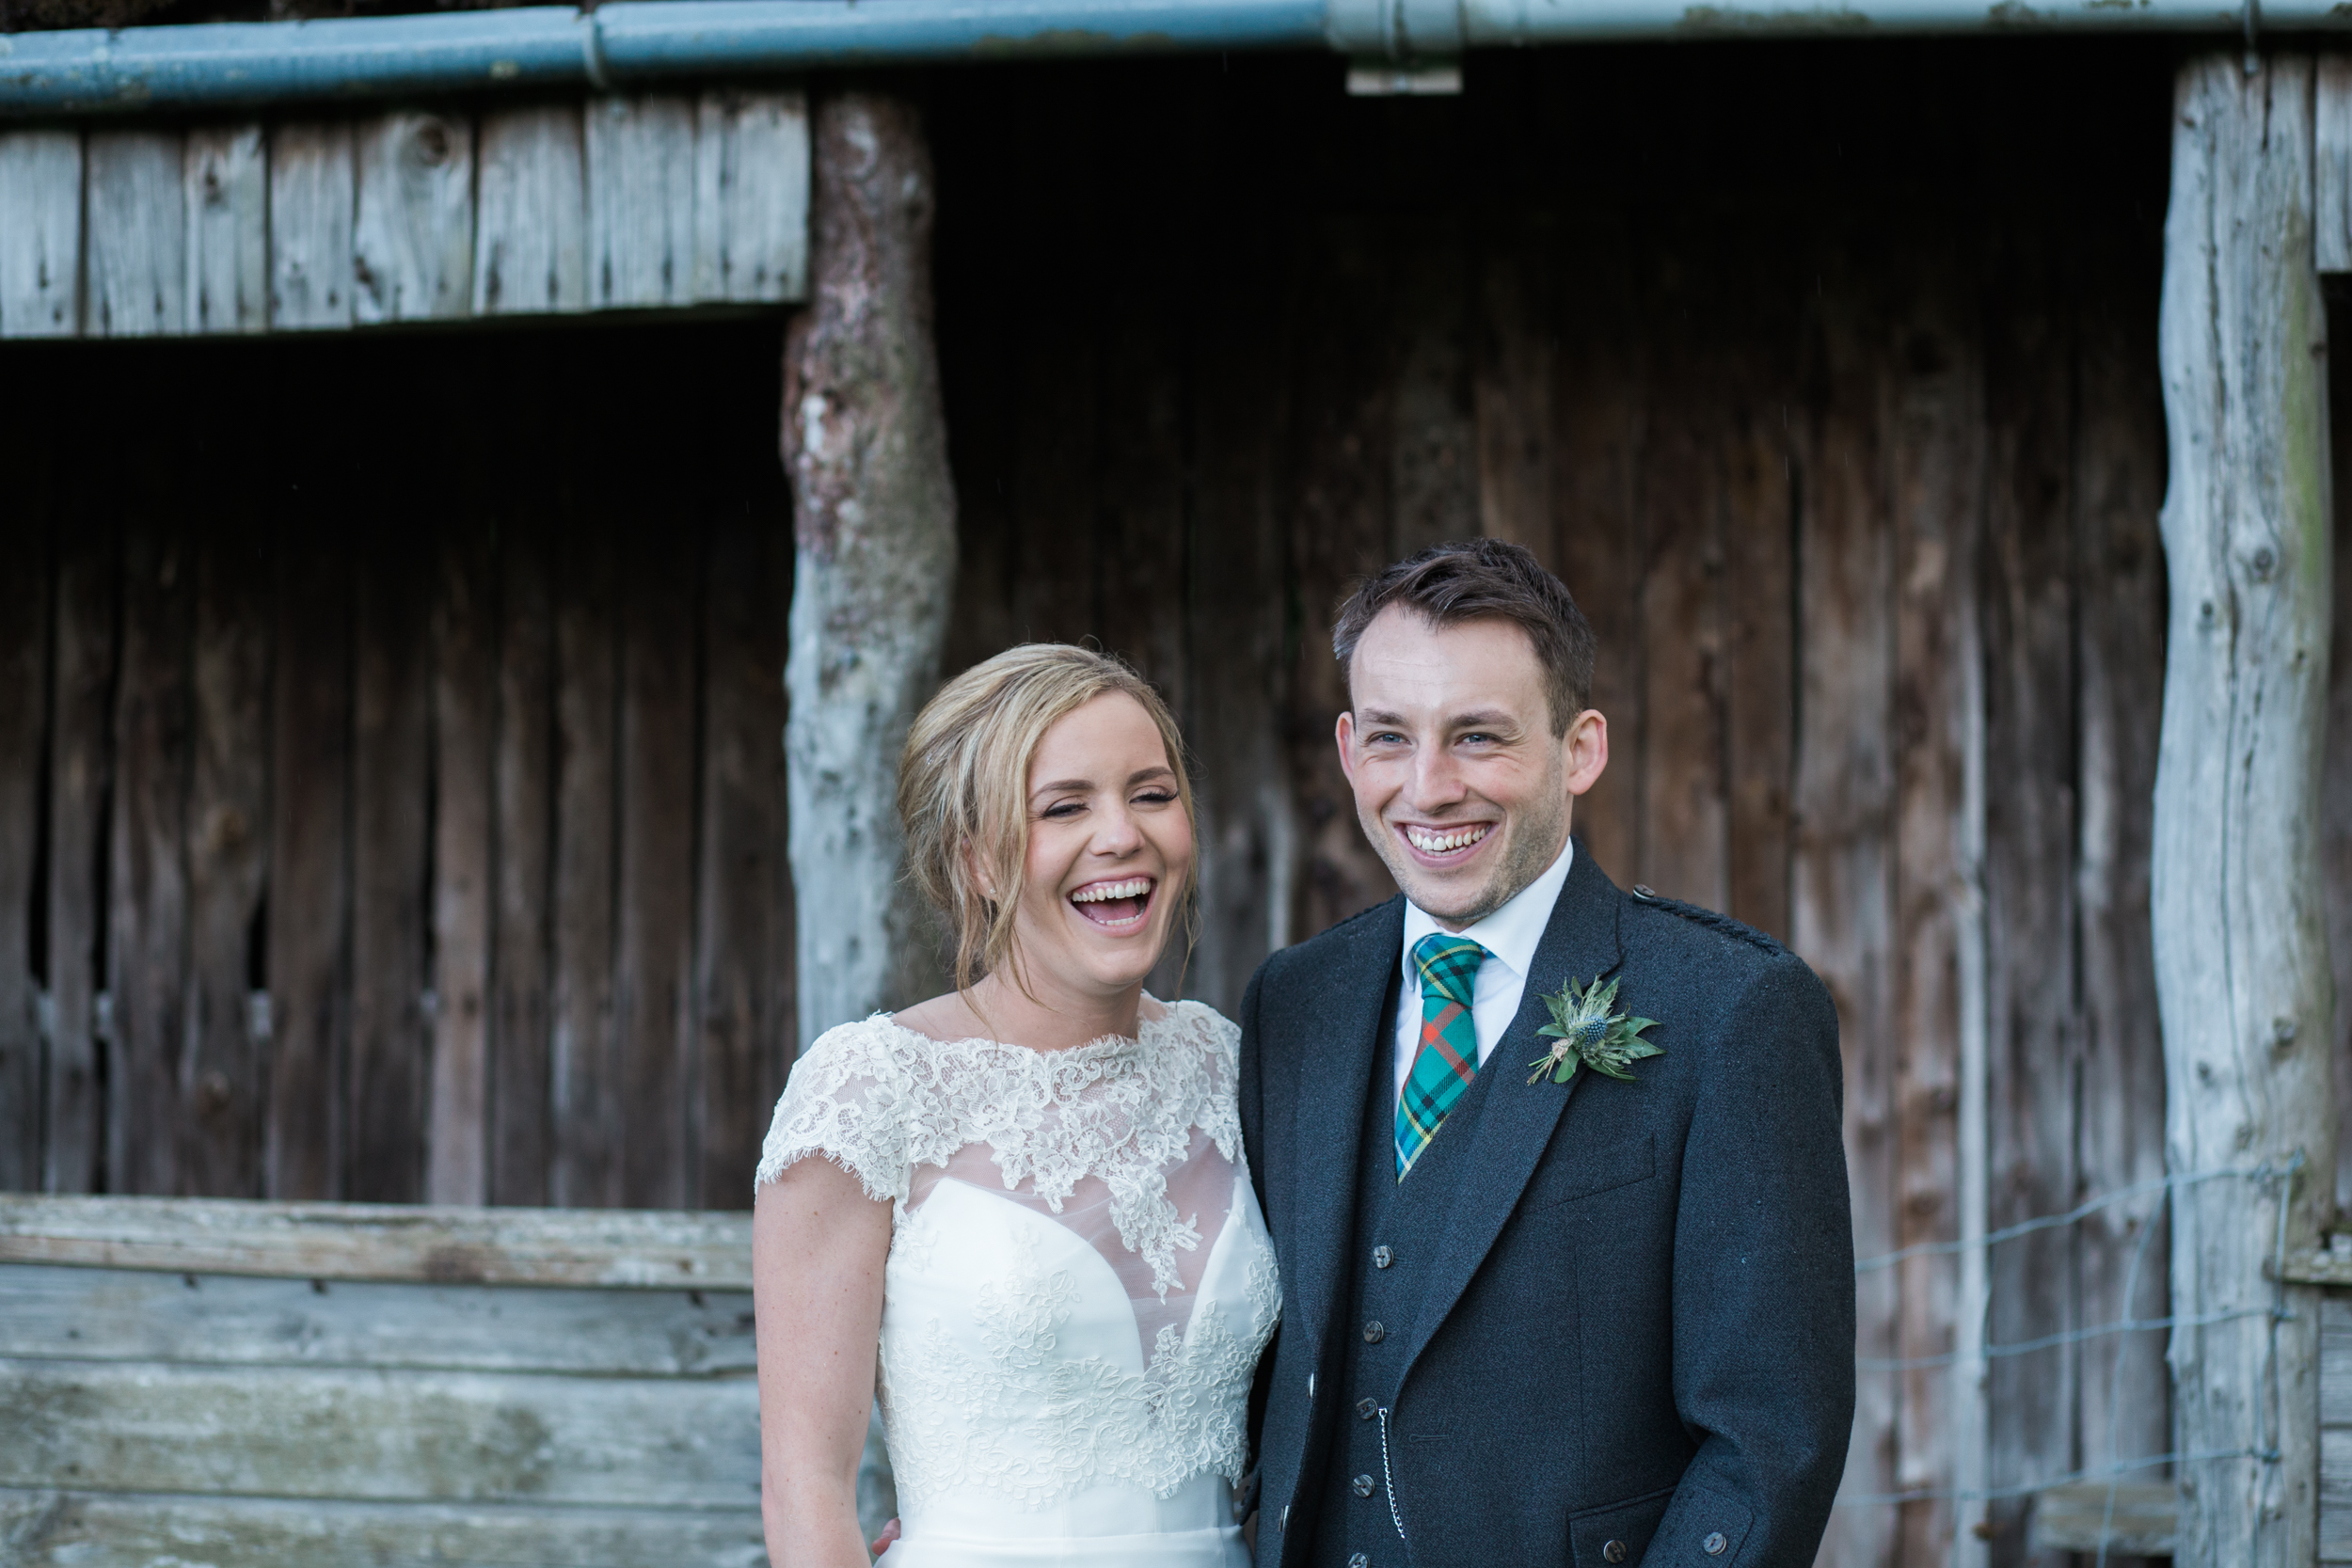 aswanley wedding venue, aswanley wedding photography, wedding photographer Aberdeenshire, wedding photographer in aberdeen, wedding photographers in aberdeen,